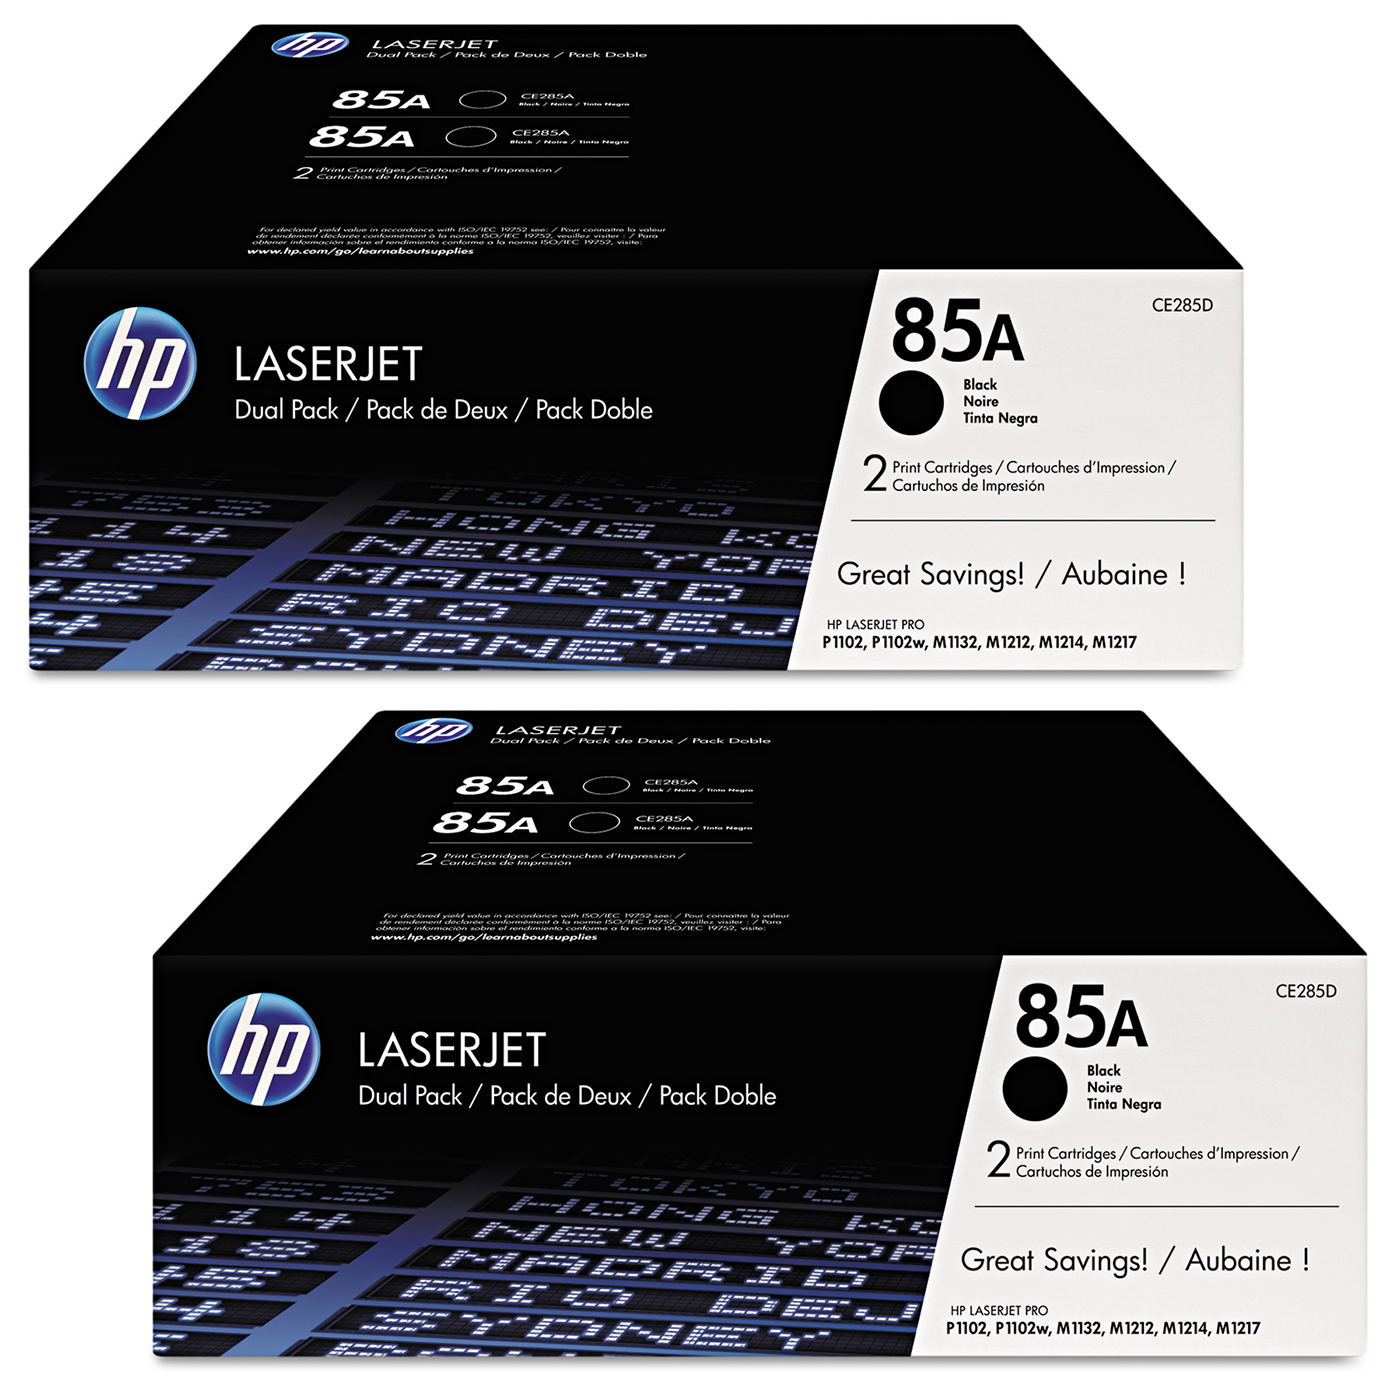 Buy two HP85A Black Toner dual packs and get $25 off